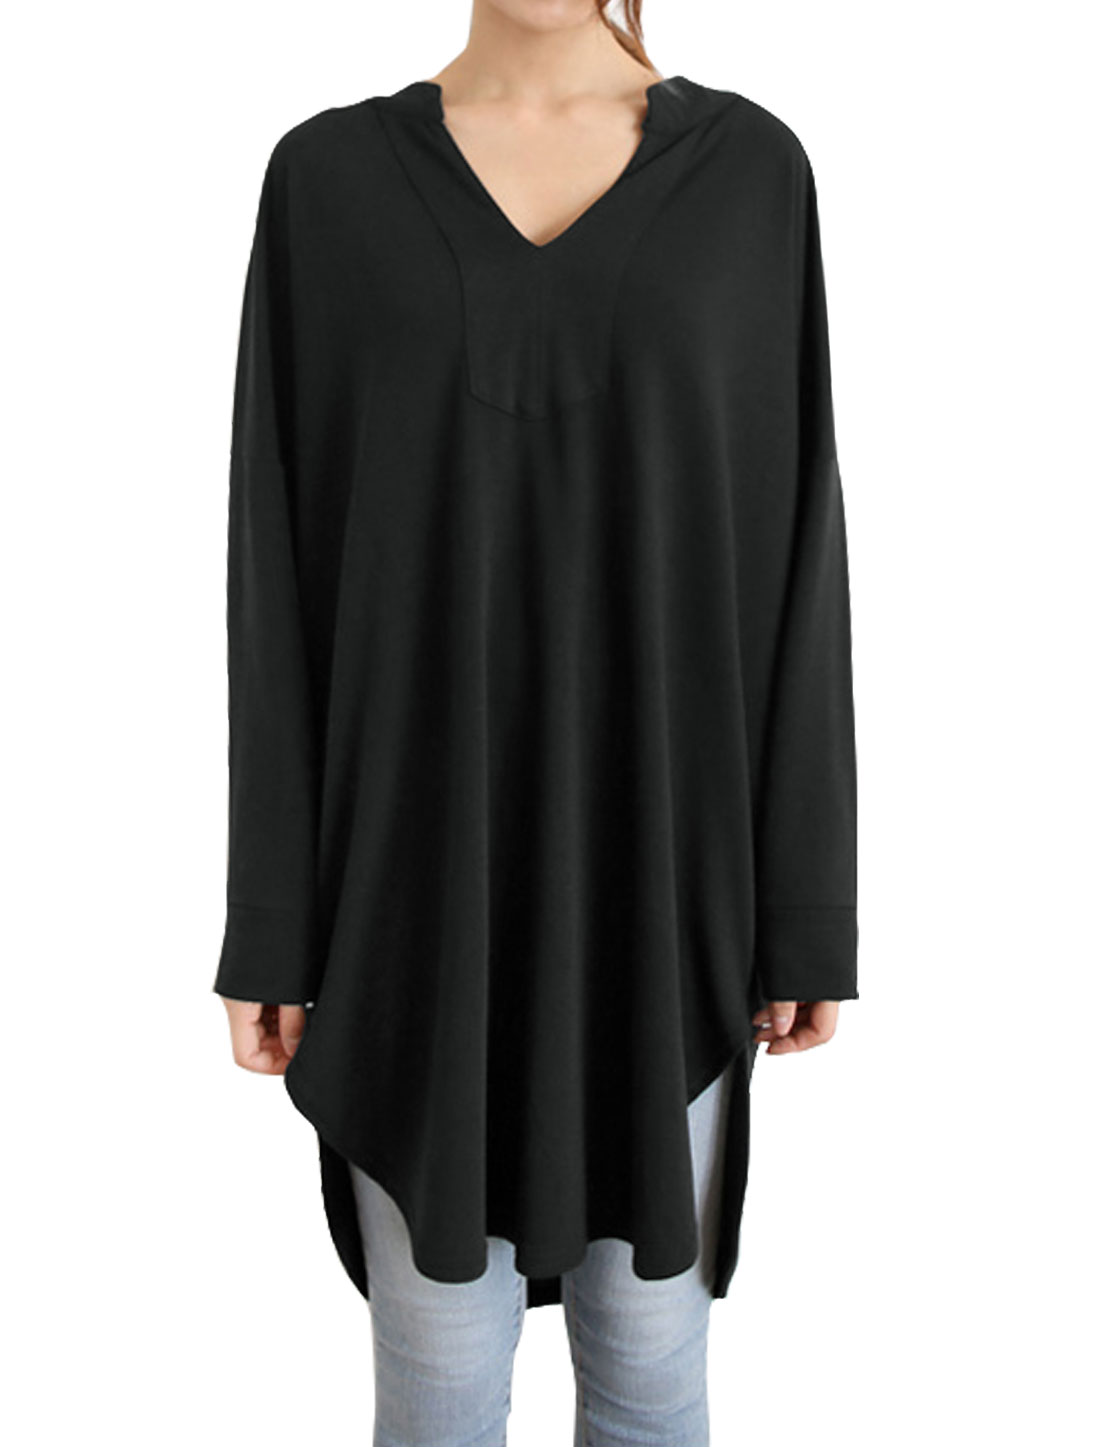 Women Drop Shoulder Batwing Sleeves Loose Tunic Blouse Black S